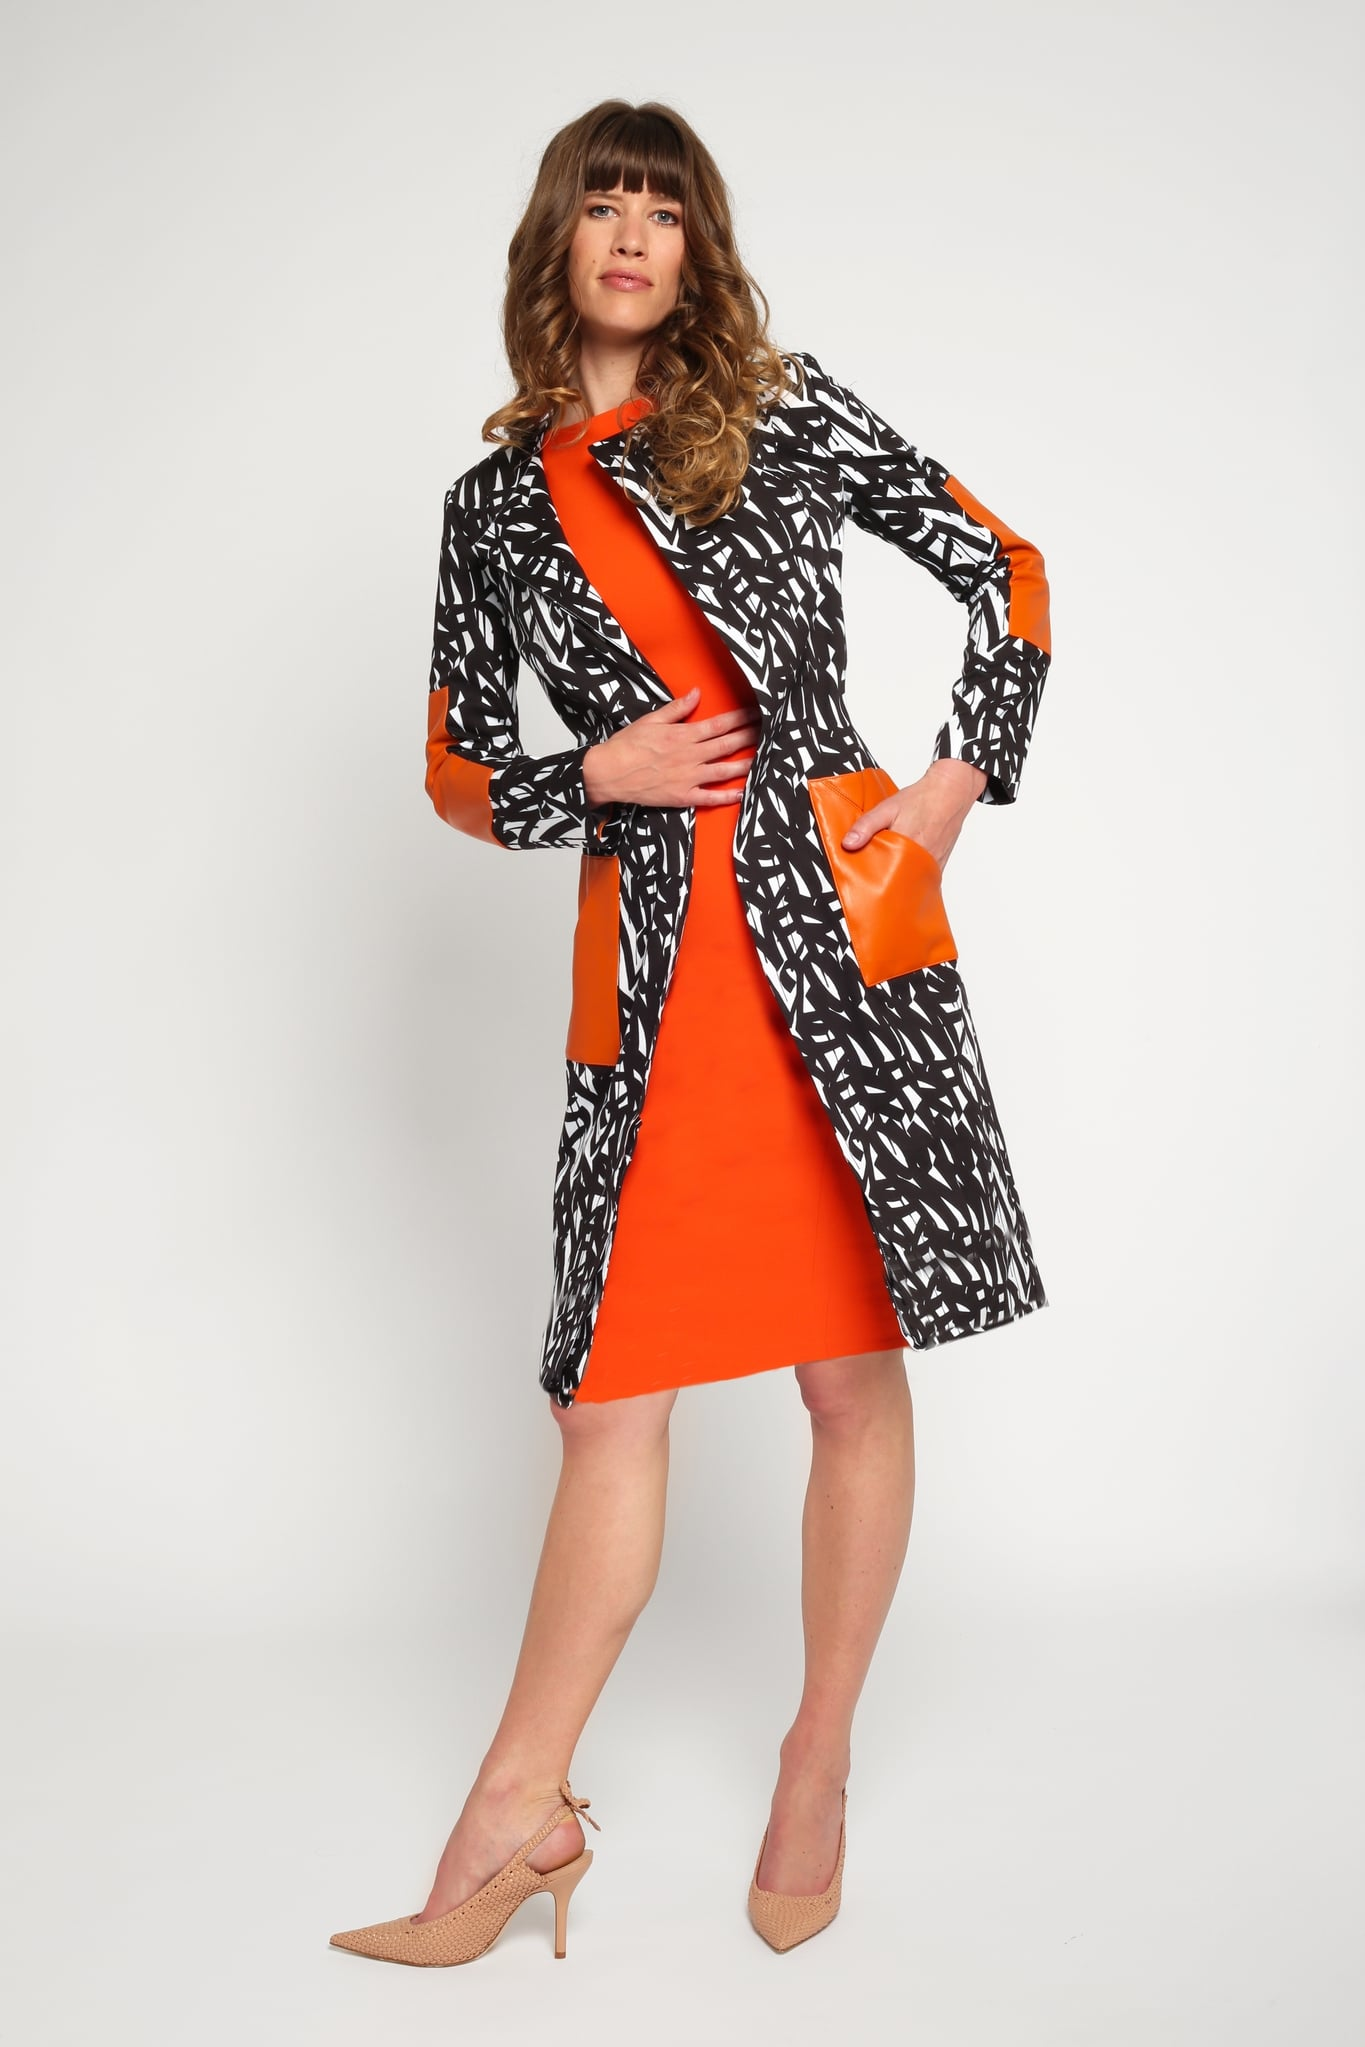 Black & White Splice Coat1